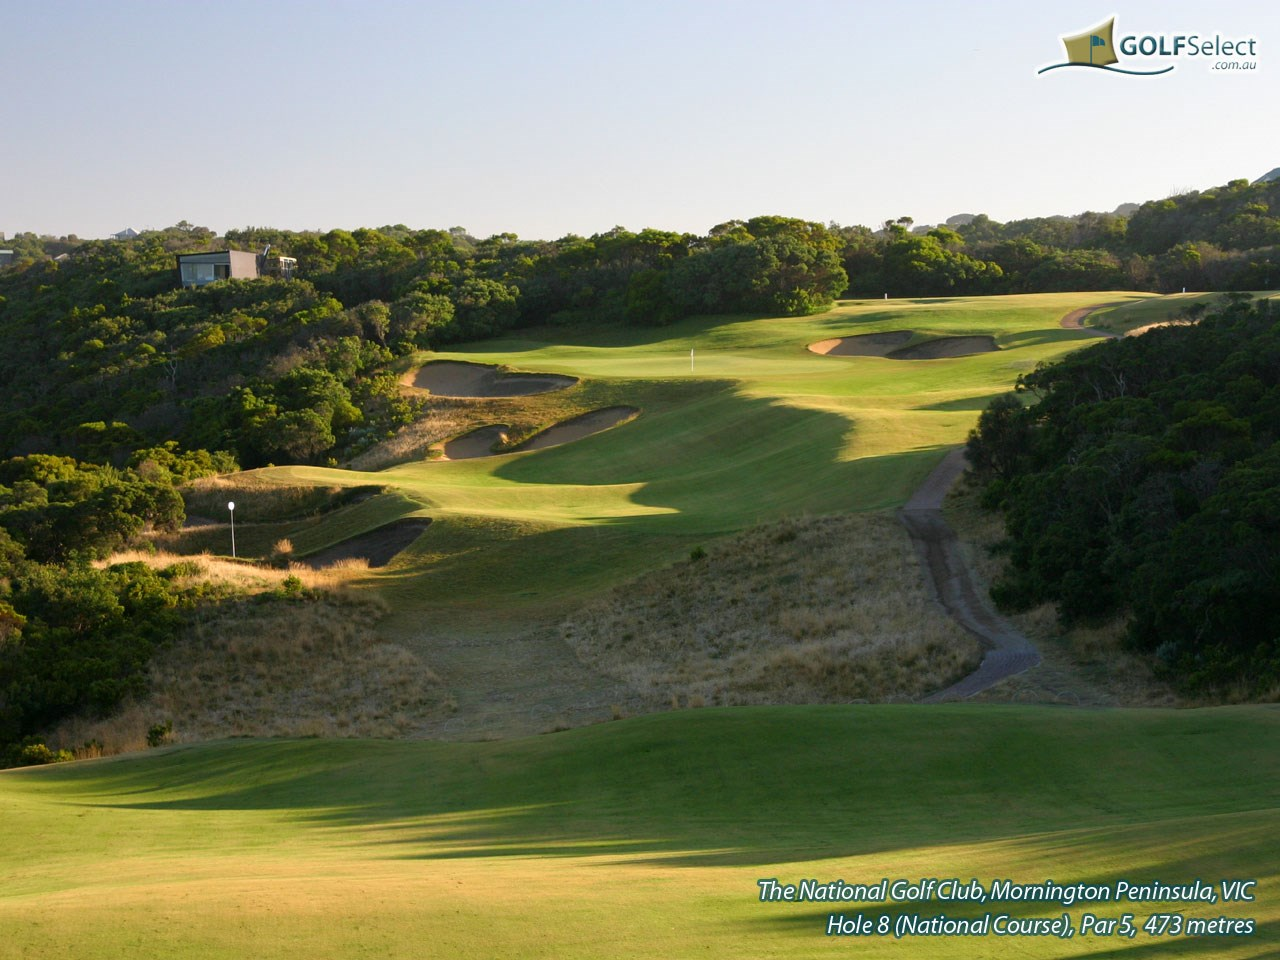 The National Golf Club (Old Course) Hole 8, Par 5, 473 metres